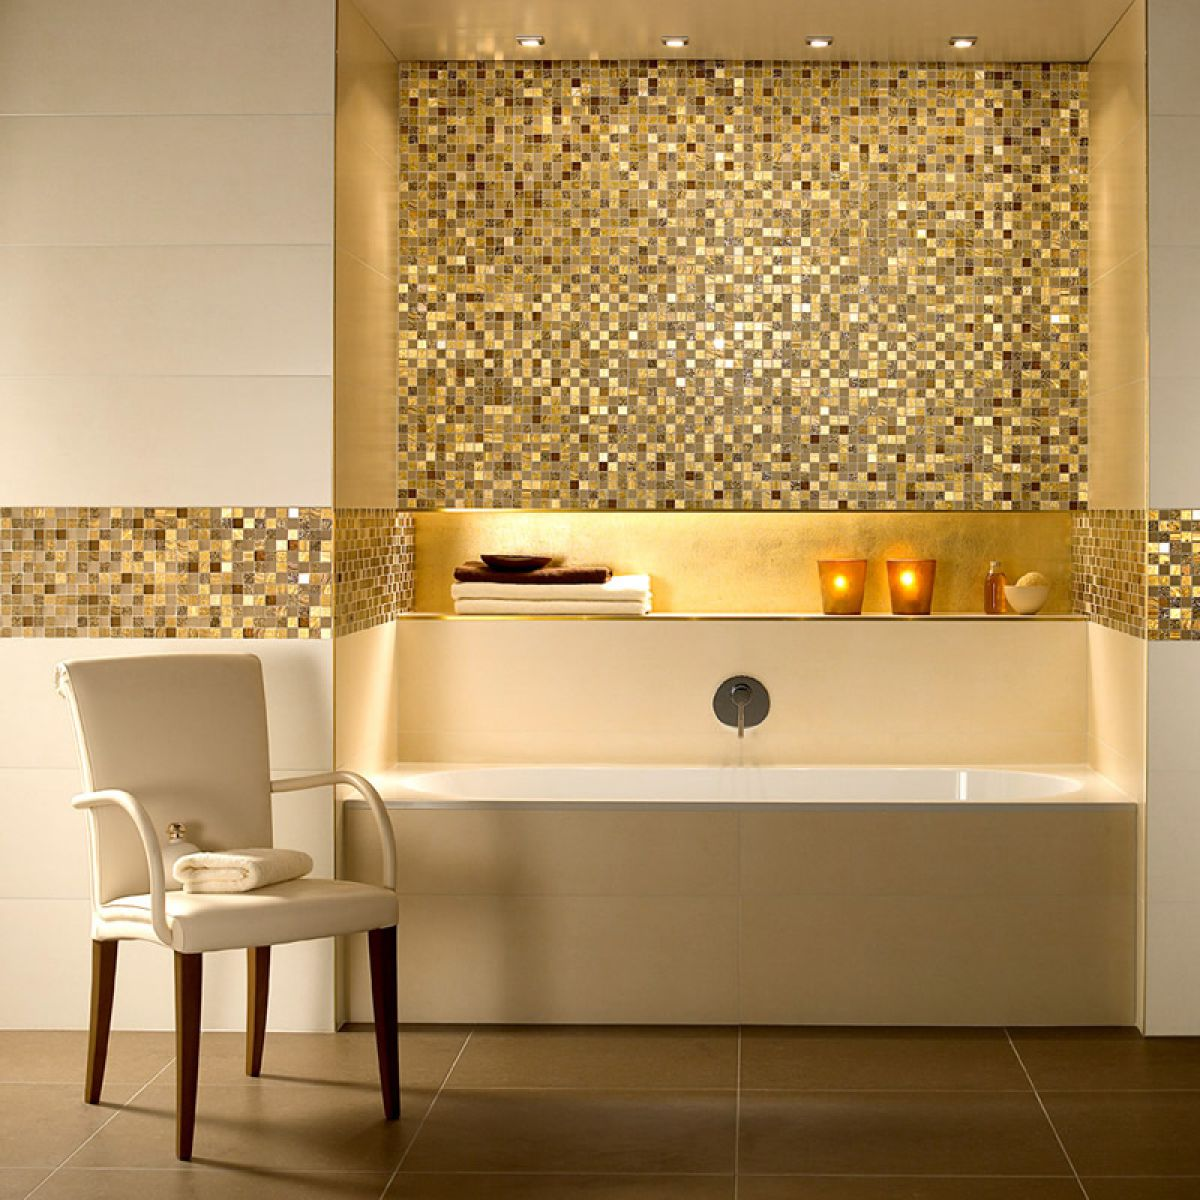 V b moonlight mosaic tiles 1042 30 x 30cm uk bathrooms for Carrelage salle de bain moderne mosaique